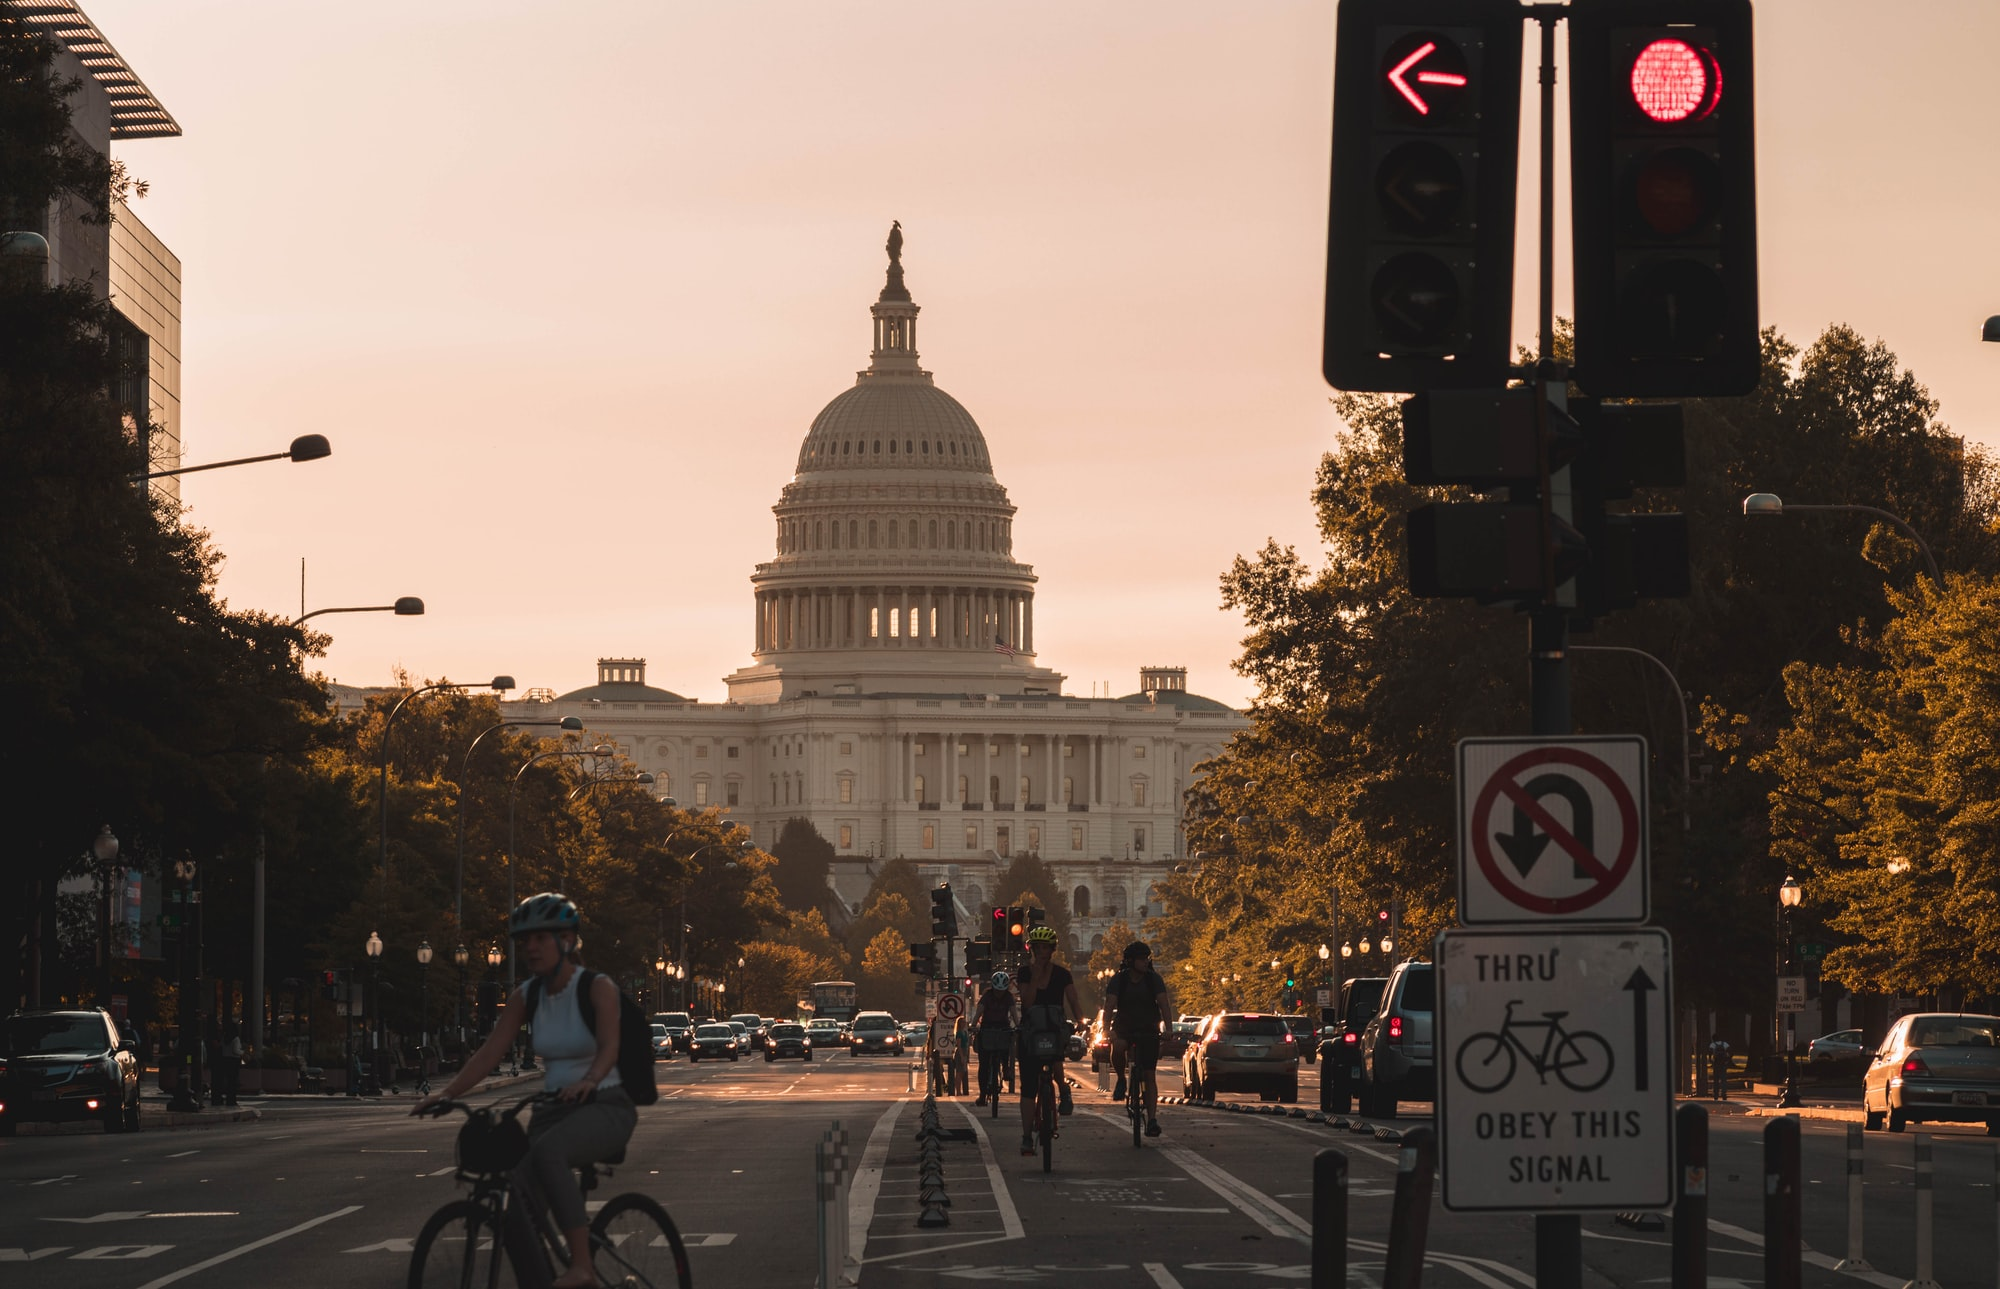 Bikers in front of the United States Capitol in Washington D.C.